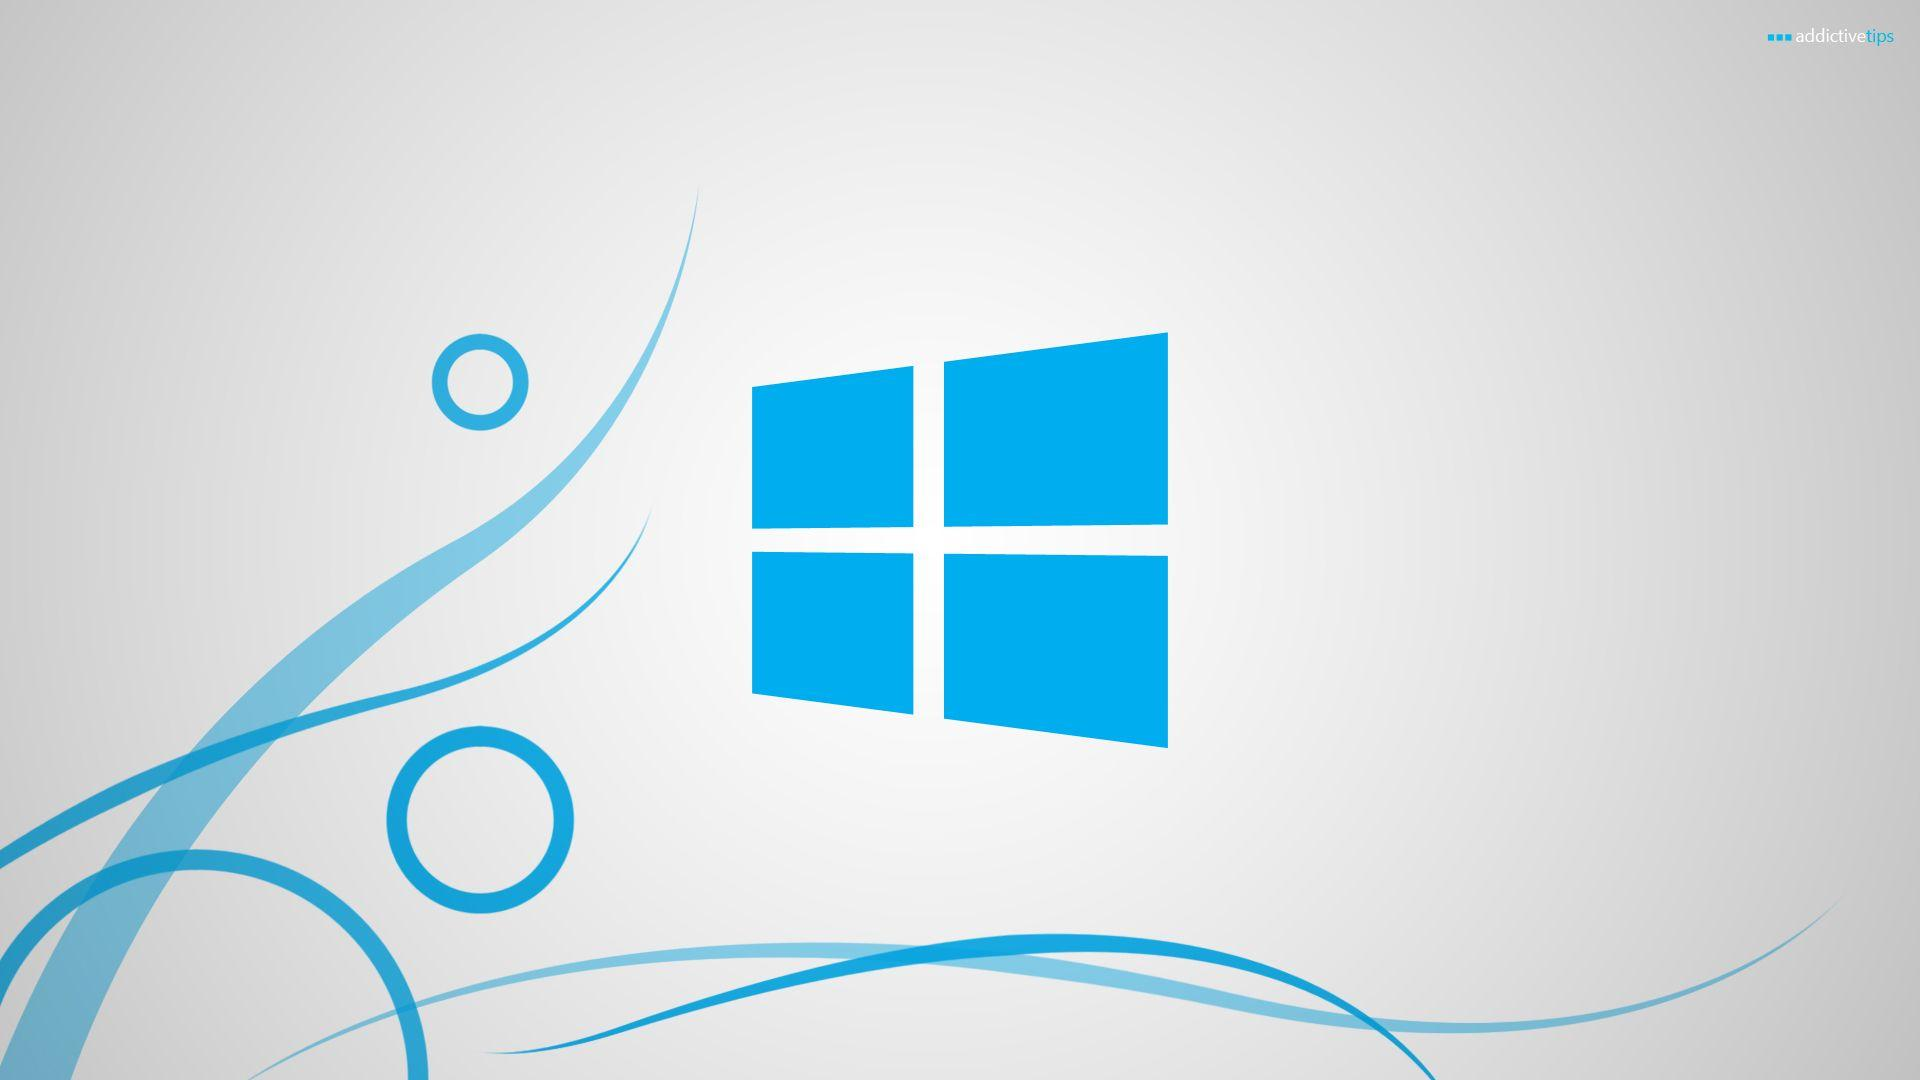 Windows 8 Wallpapers 1920x1080 - Wallpaper Cave